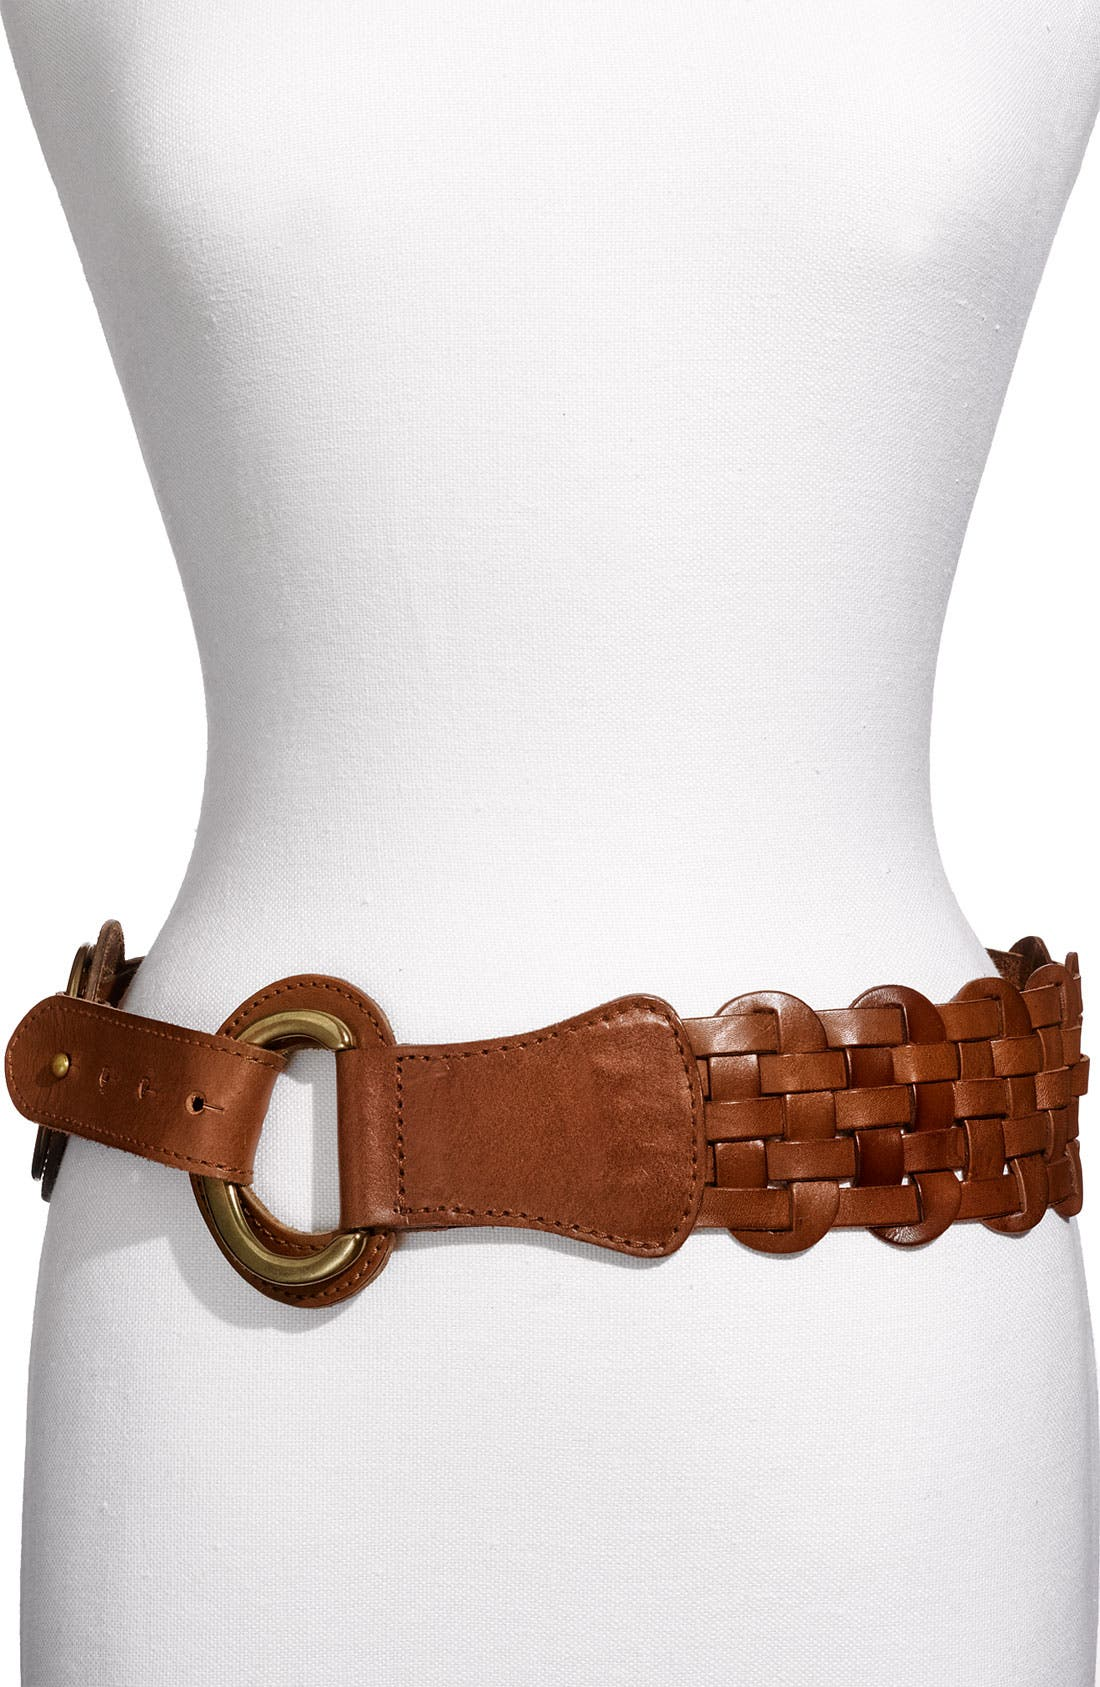 Alternate Image 1 Selected - Linea Pelle 'Linked Ring' Hip Belt